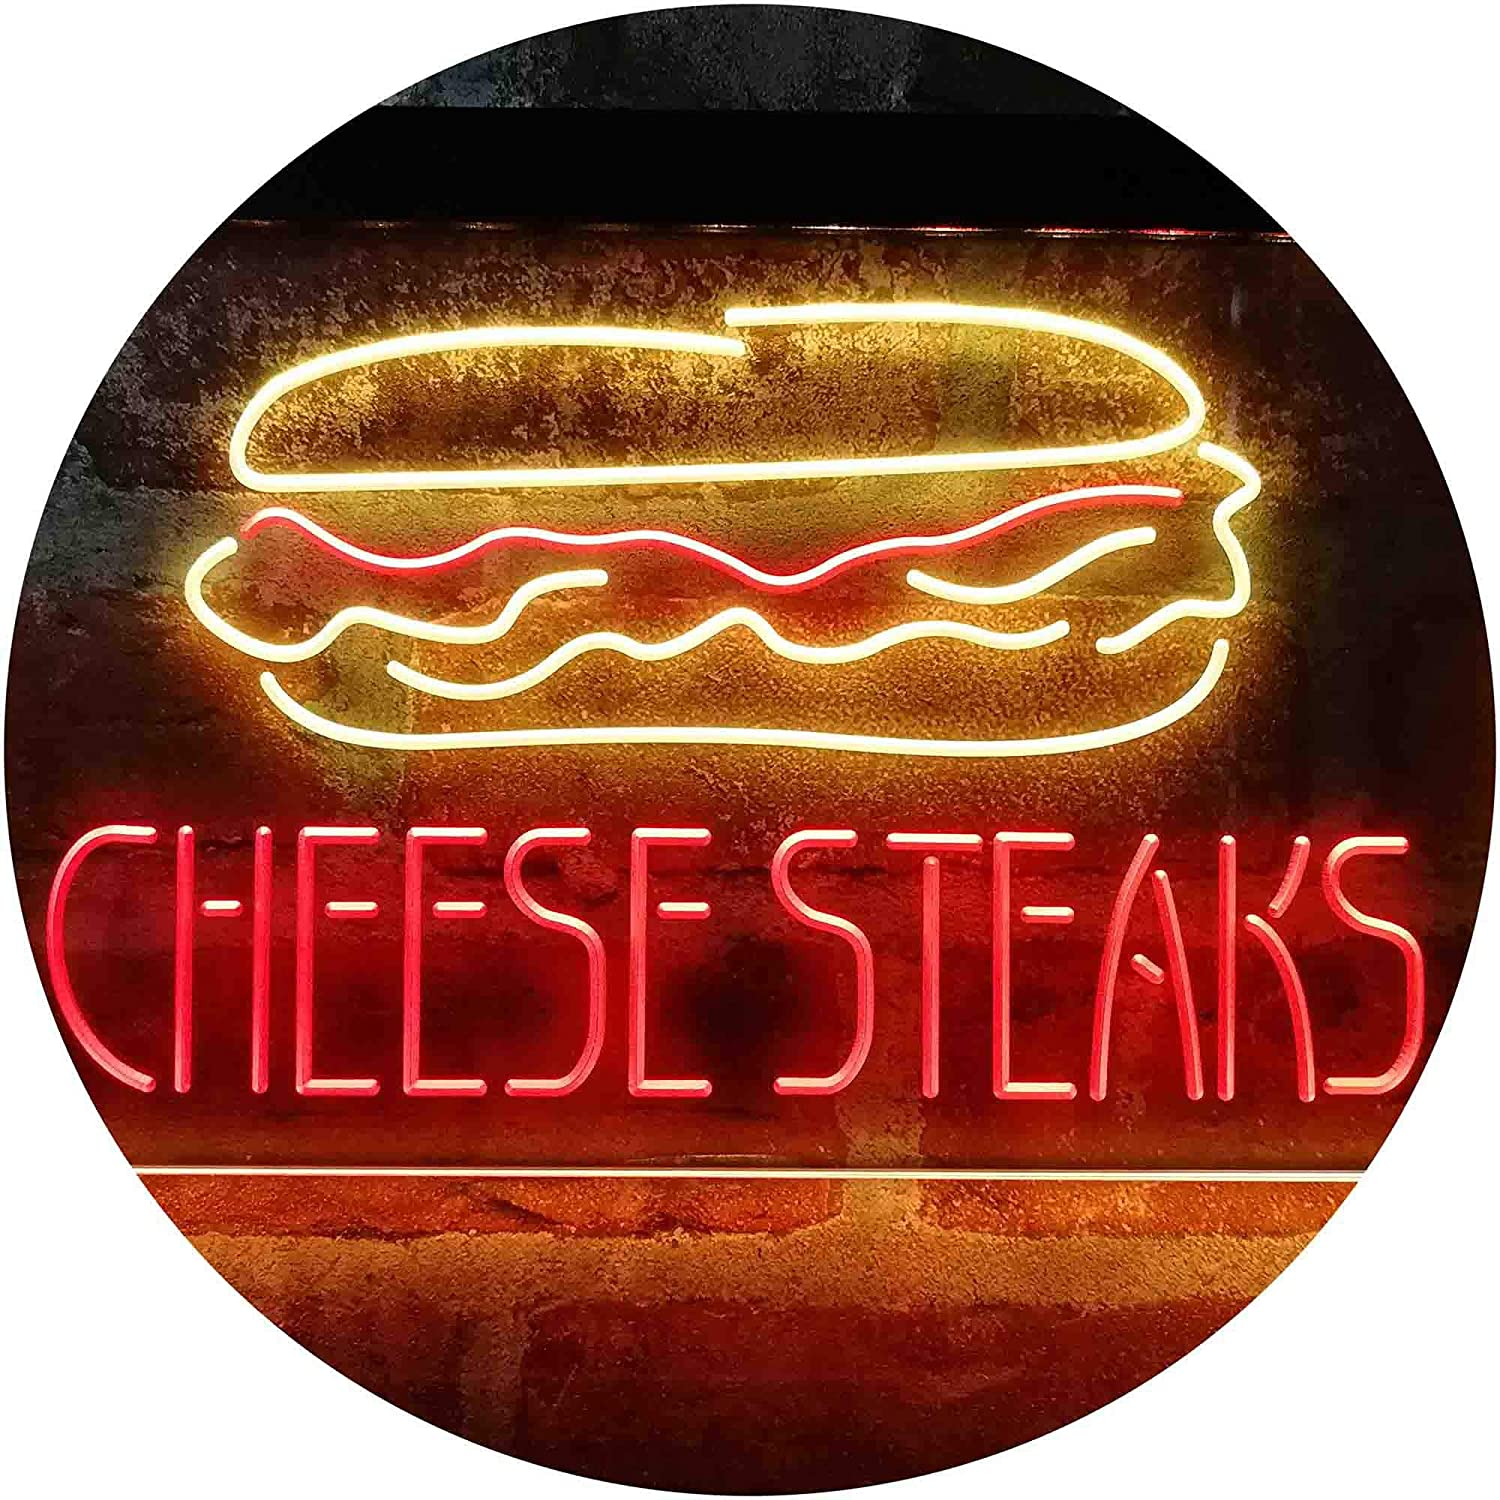 ADVPRO Cheese Steaks Fast Food Store Dual Color LED Neon Sign Red & Yellow 24 x 16 Inches st6s64-i4027-ry